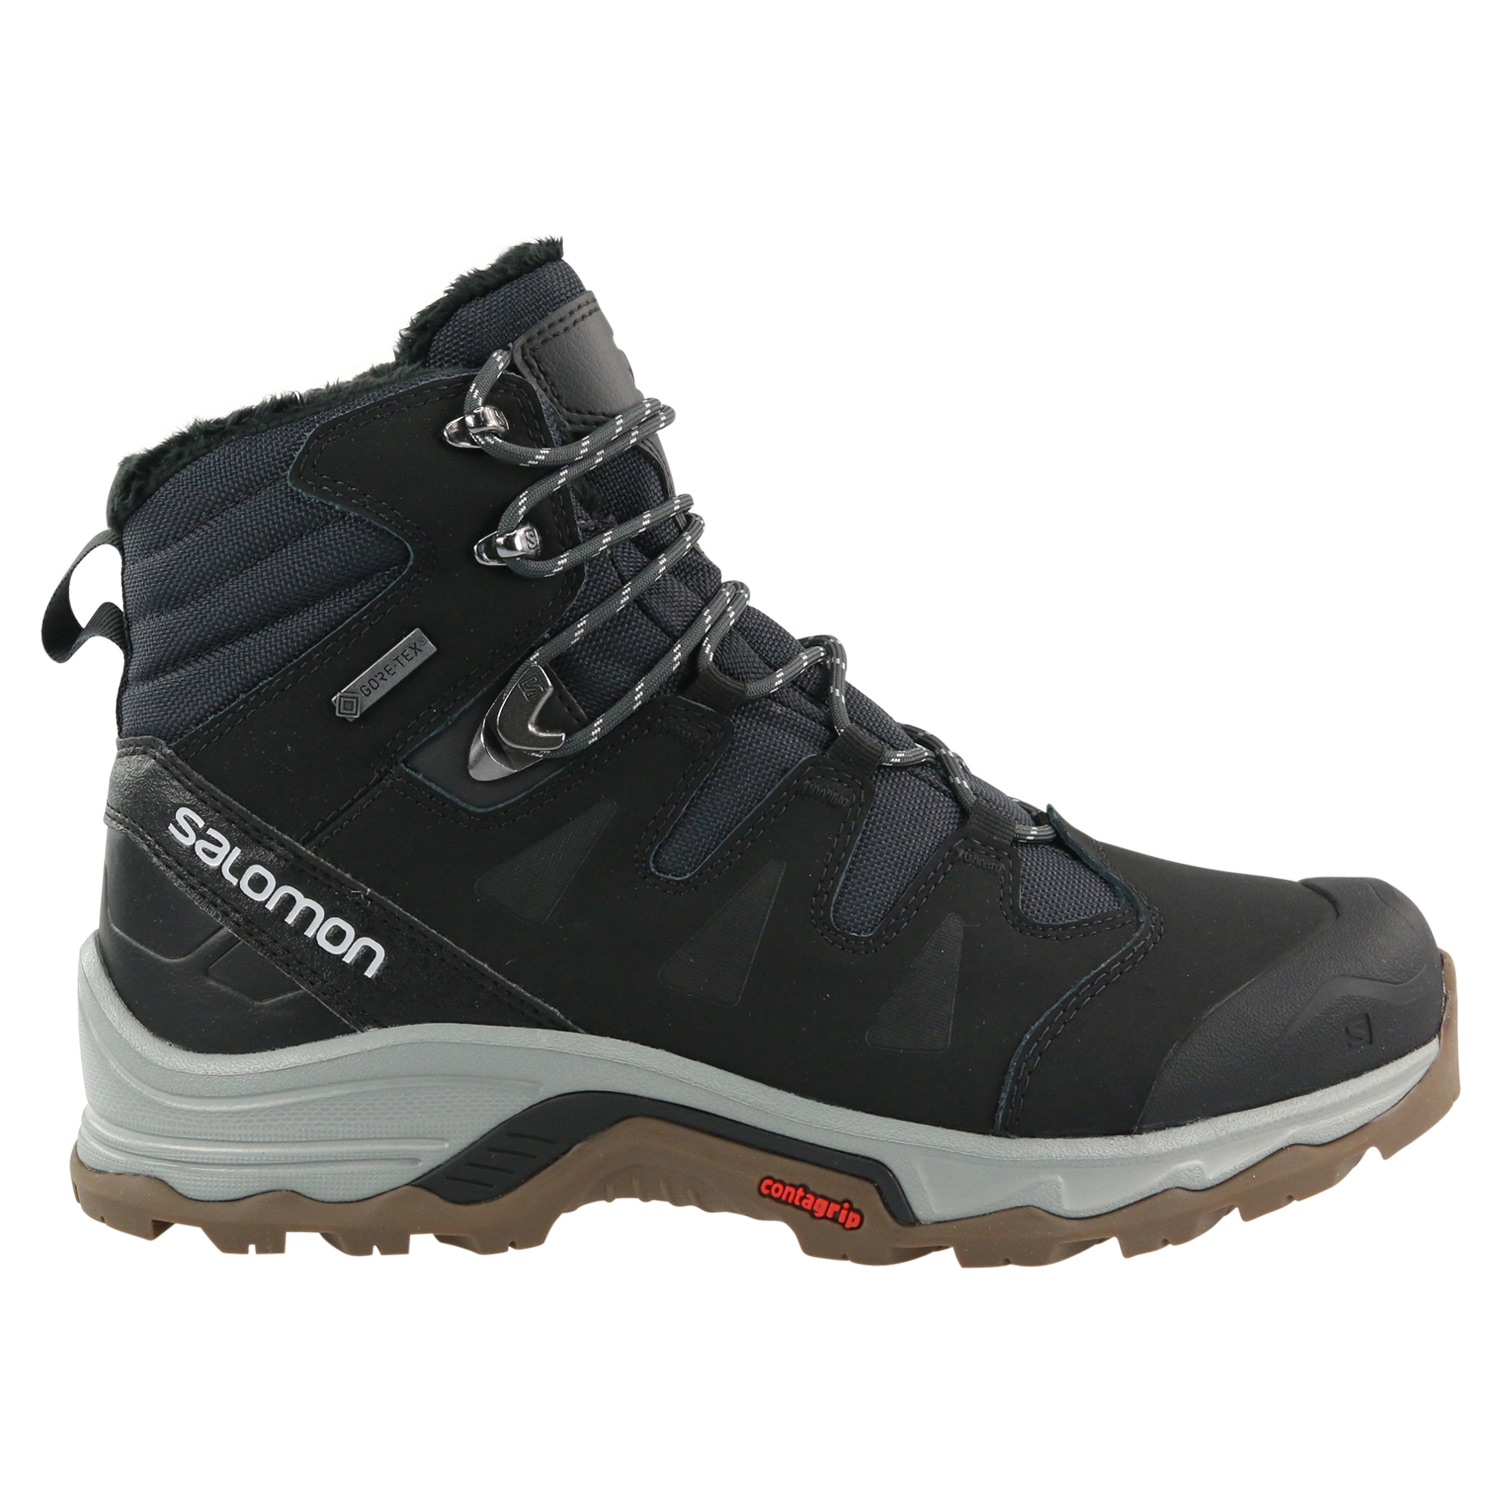 salomon quest winter gtx wanderschuhe winterschuhe. Black Bedroom Furniture Sets. Home Design Ideas